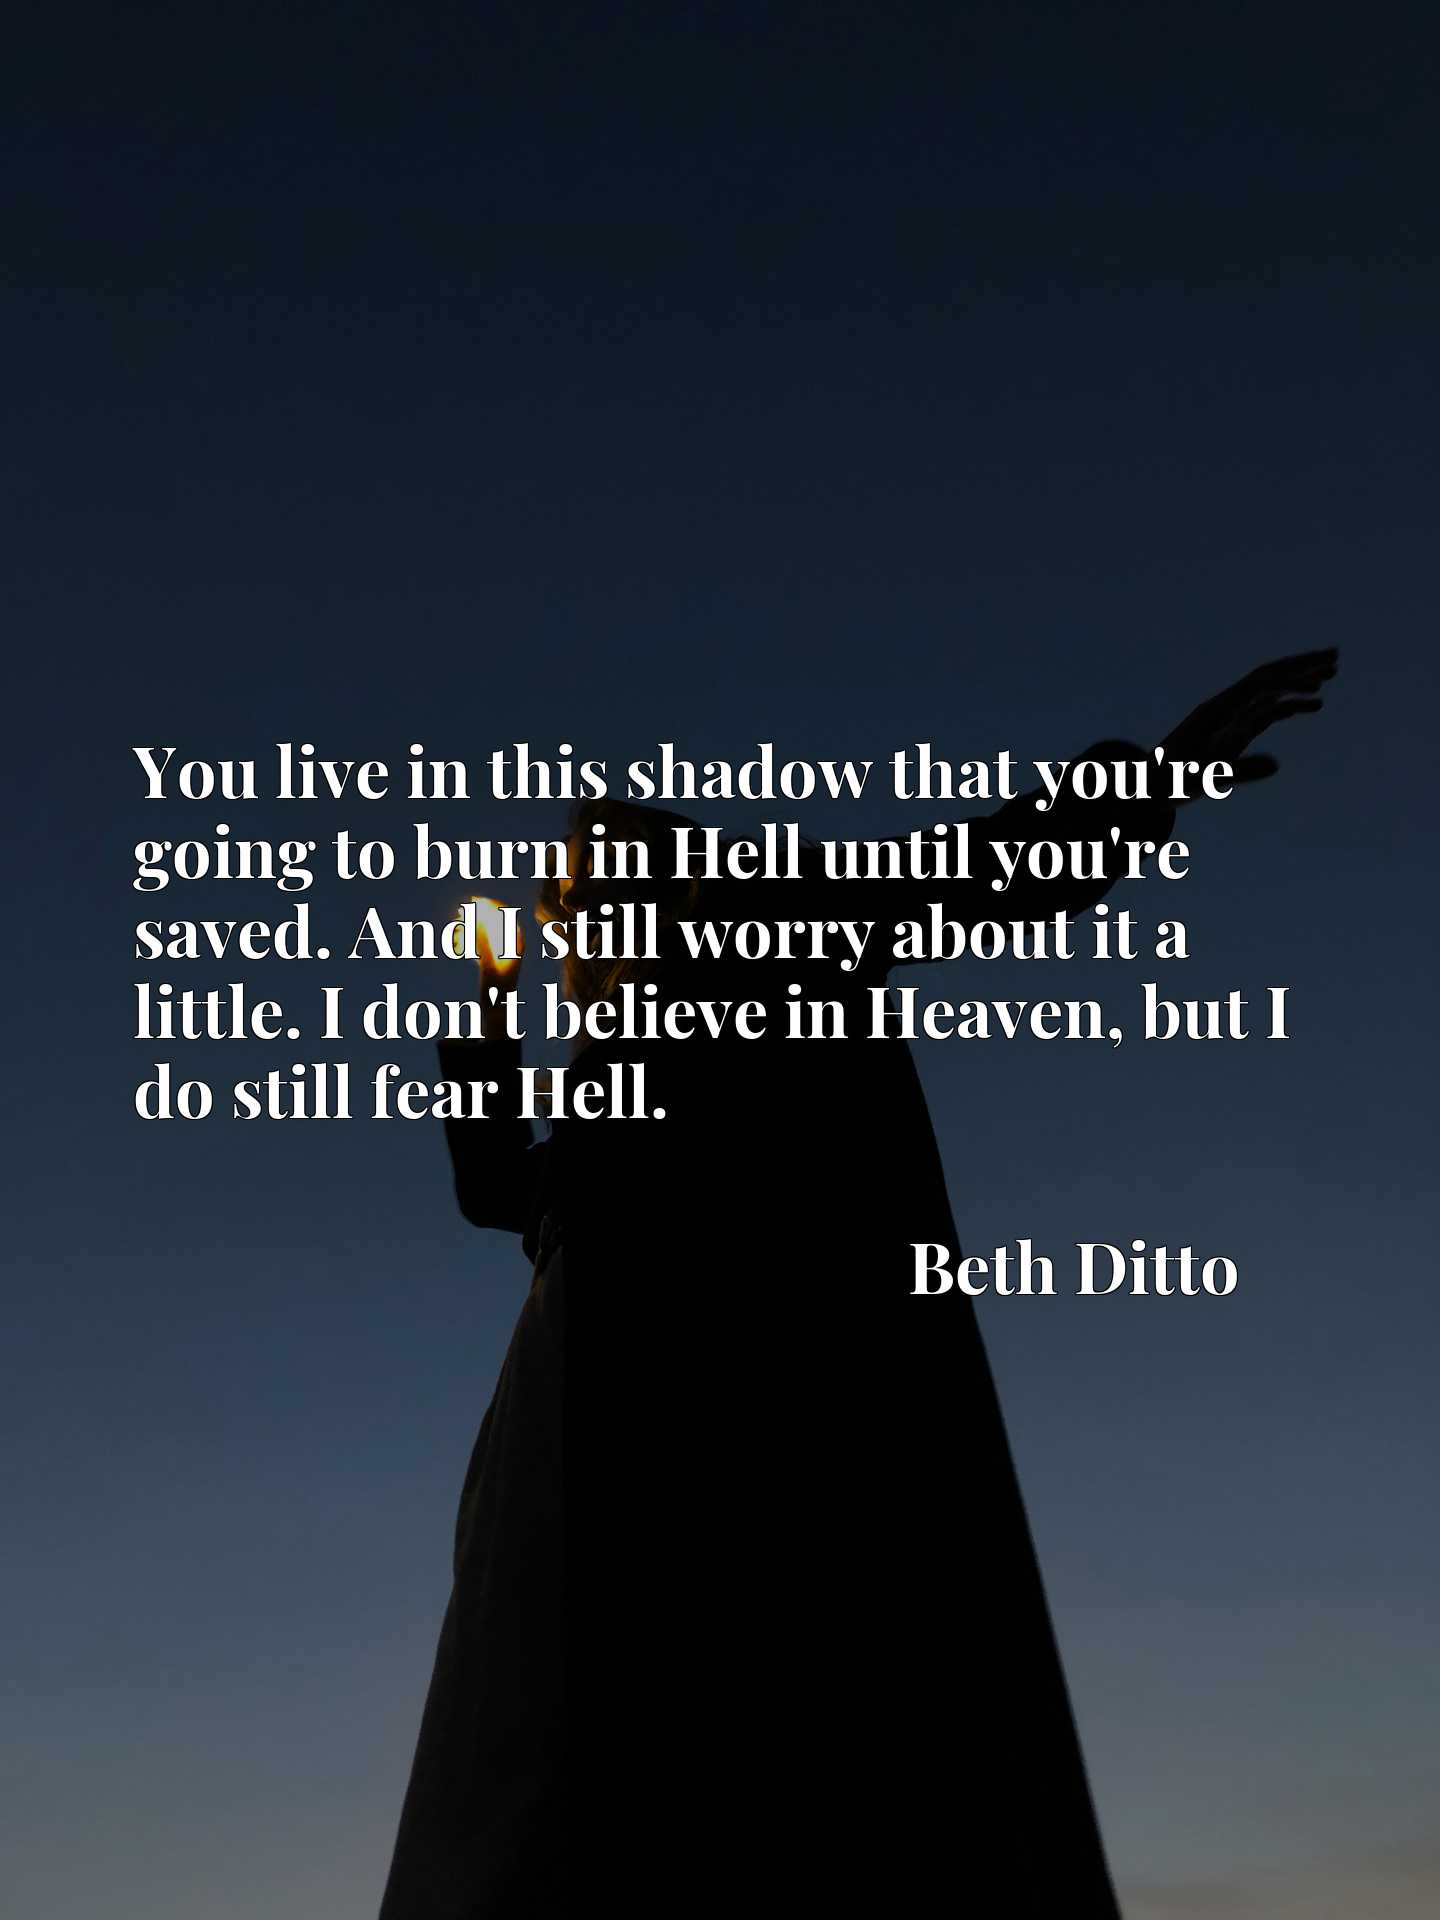 You live in this shadow that you're going to burn in Hell until you're saved. And I still worry about it a little. I don't believe in Heaven, but I do still fear Hell.